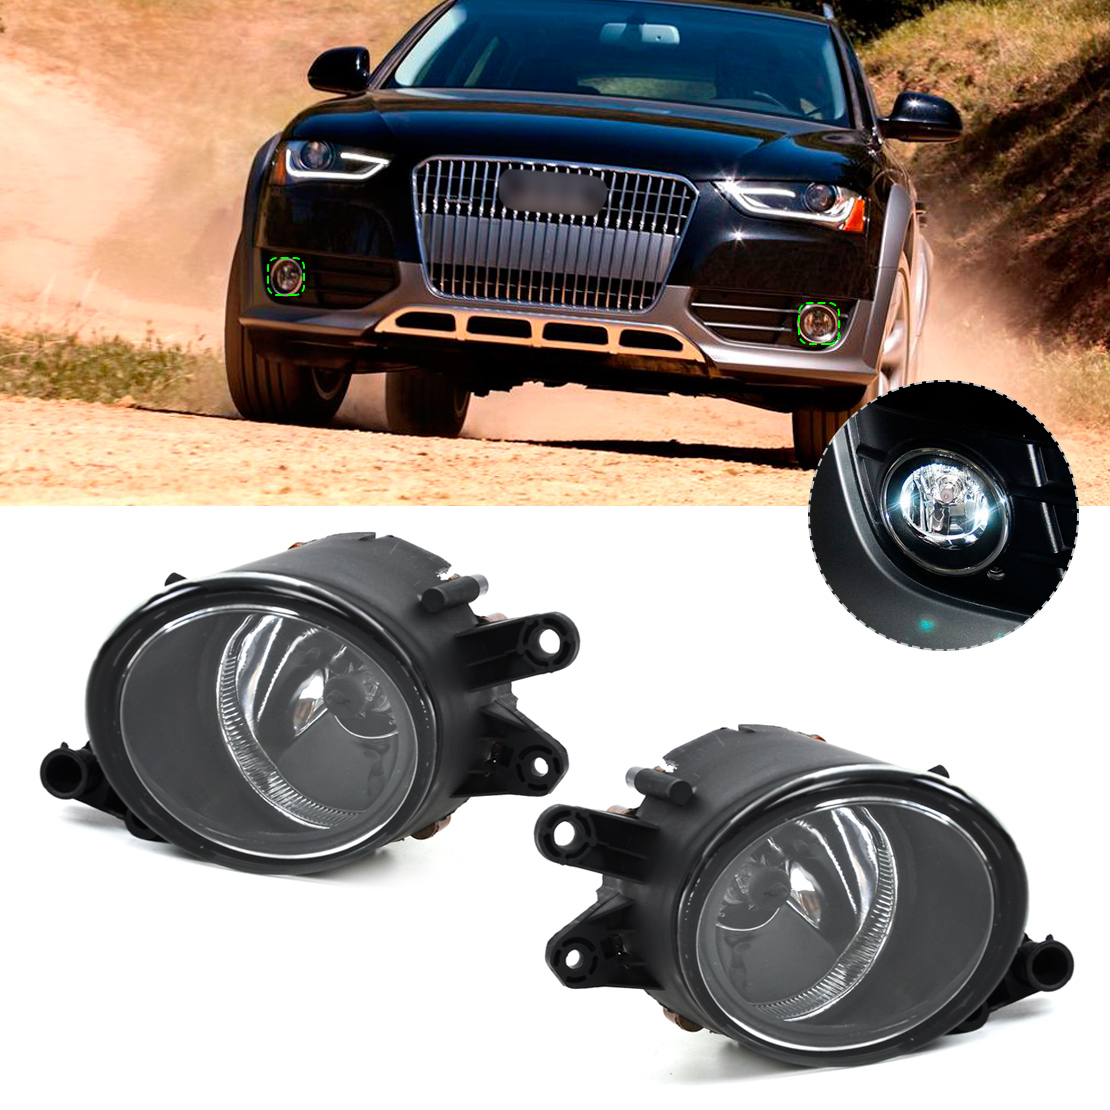 DWCX 8E0941700B 8E0941699B Left Right Fog Light font b Lamp b font for Audi A4 B6